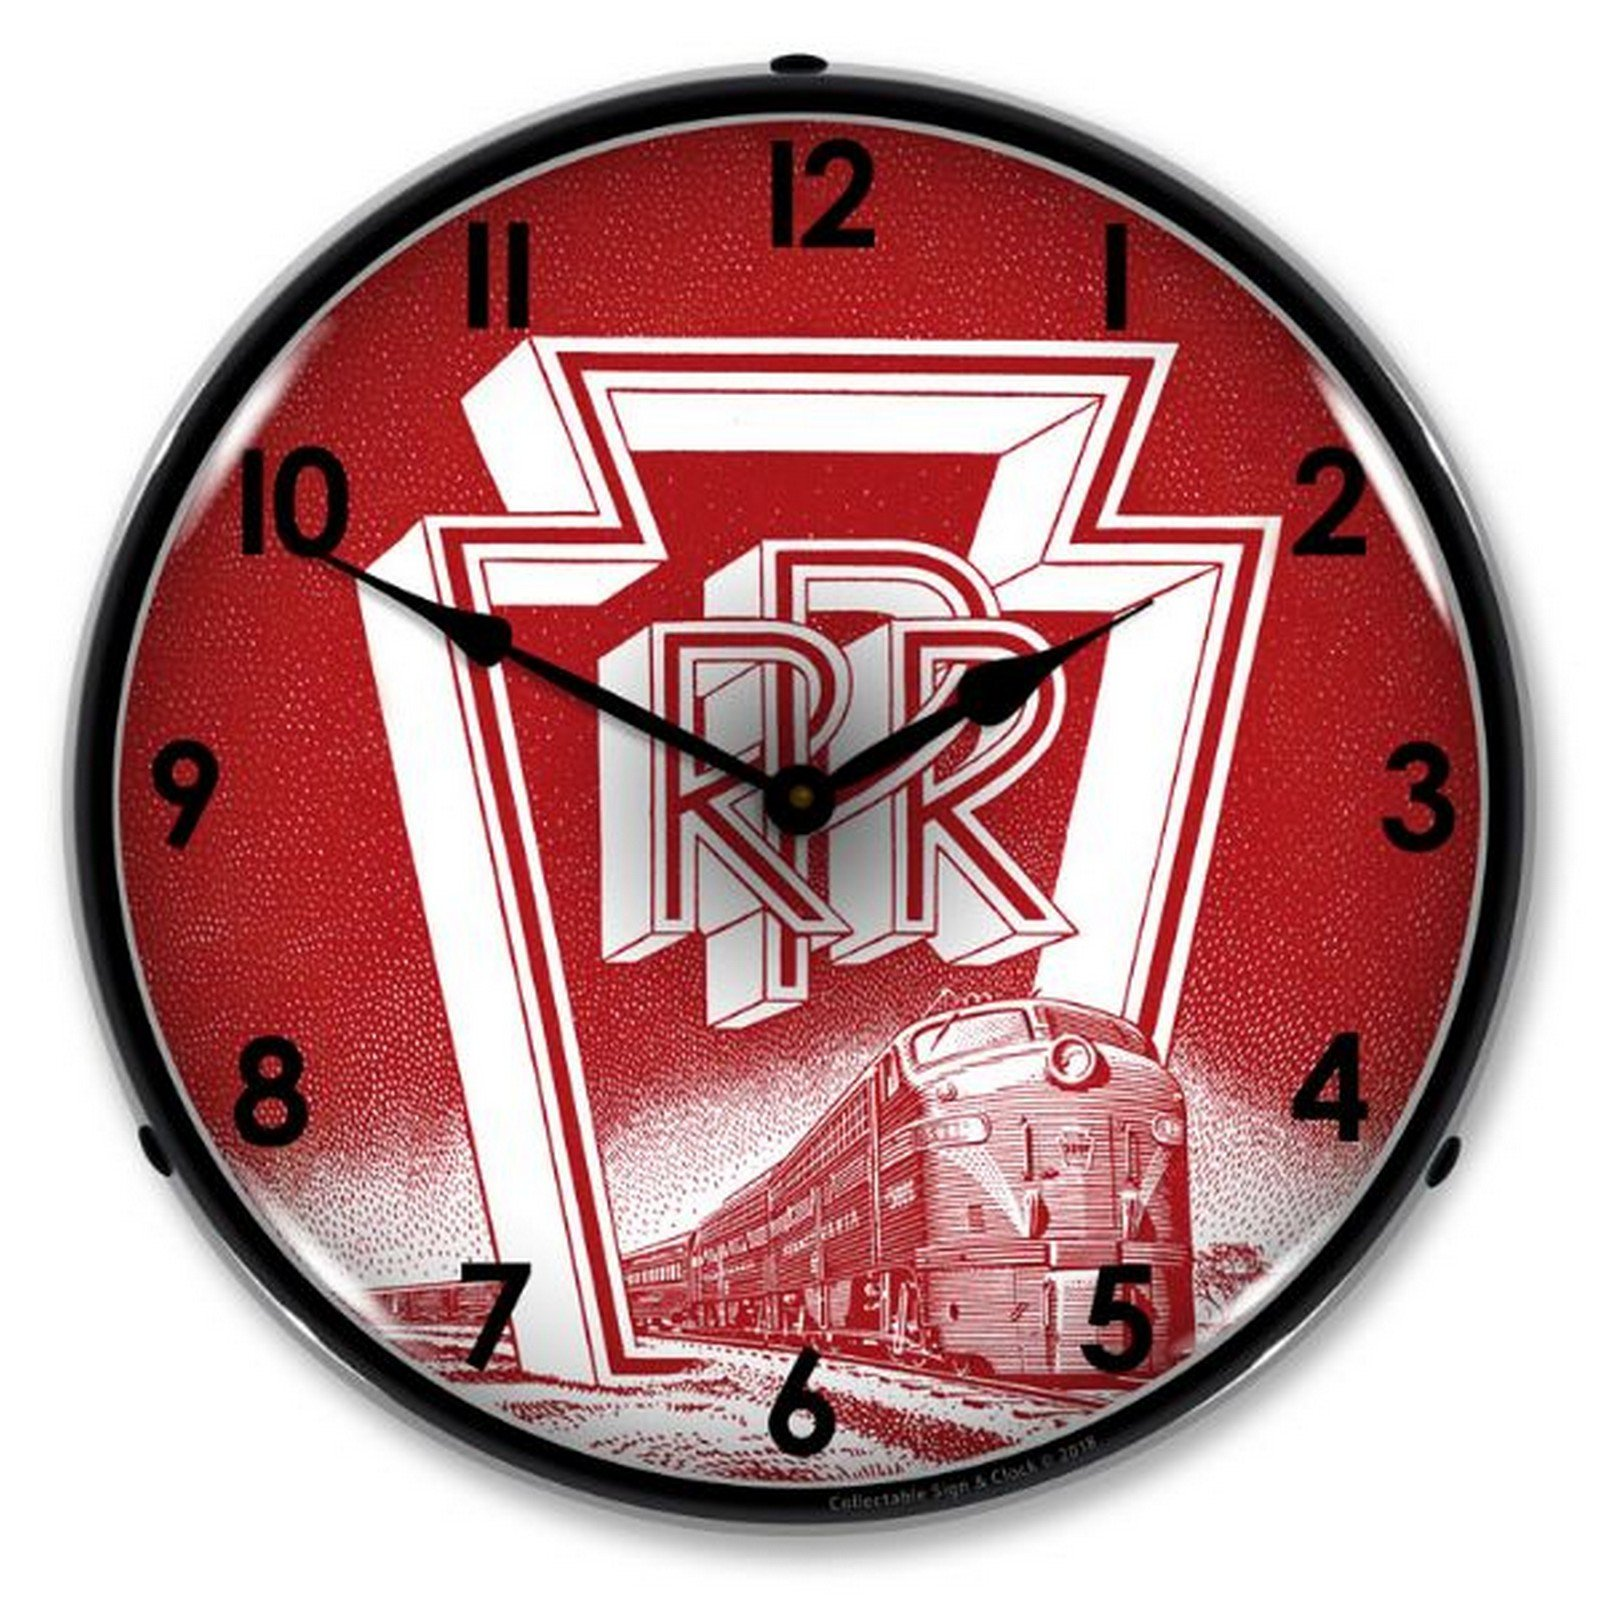 Pennsylvania Railroad Lighted Wall Clock by Collectable Sign and Clock